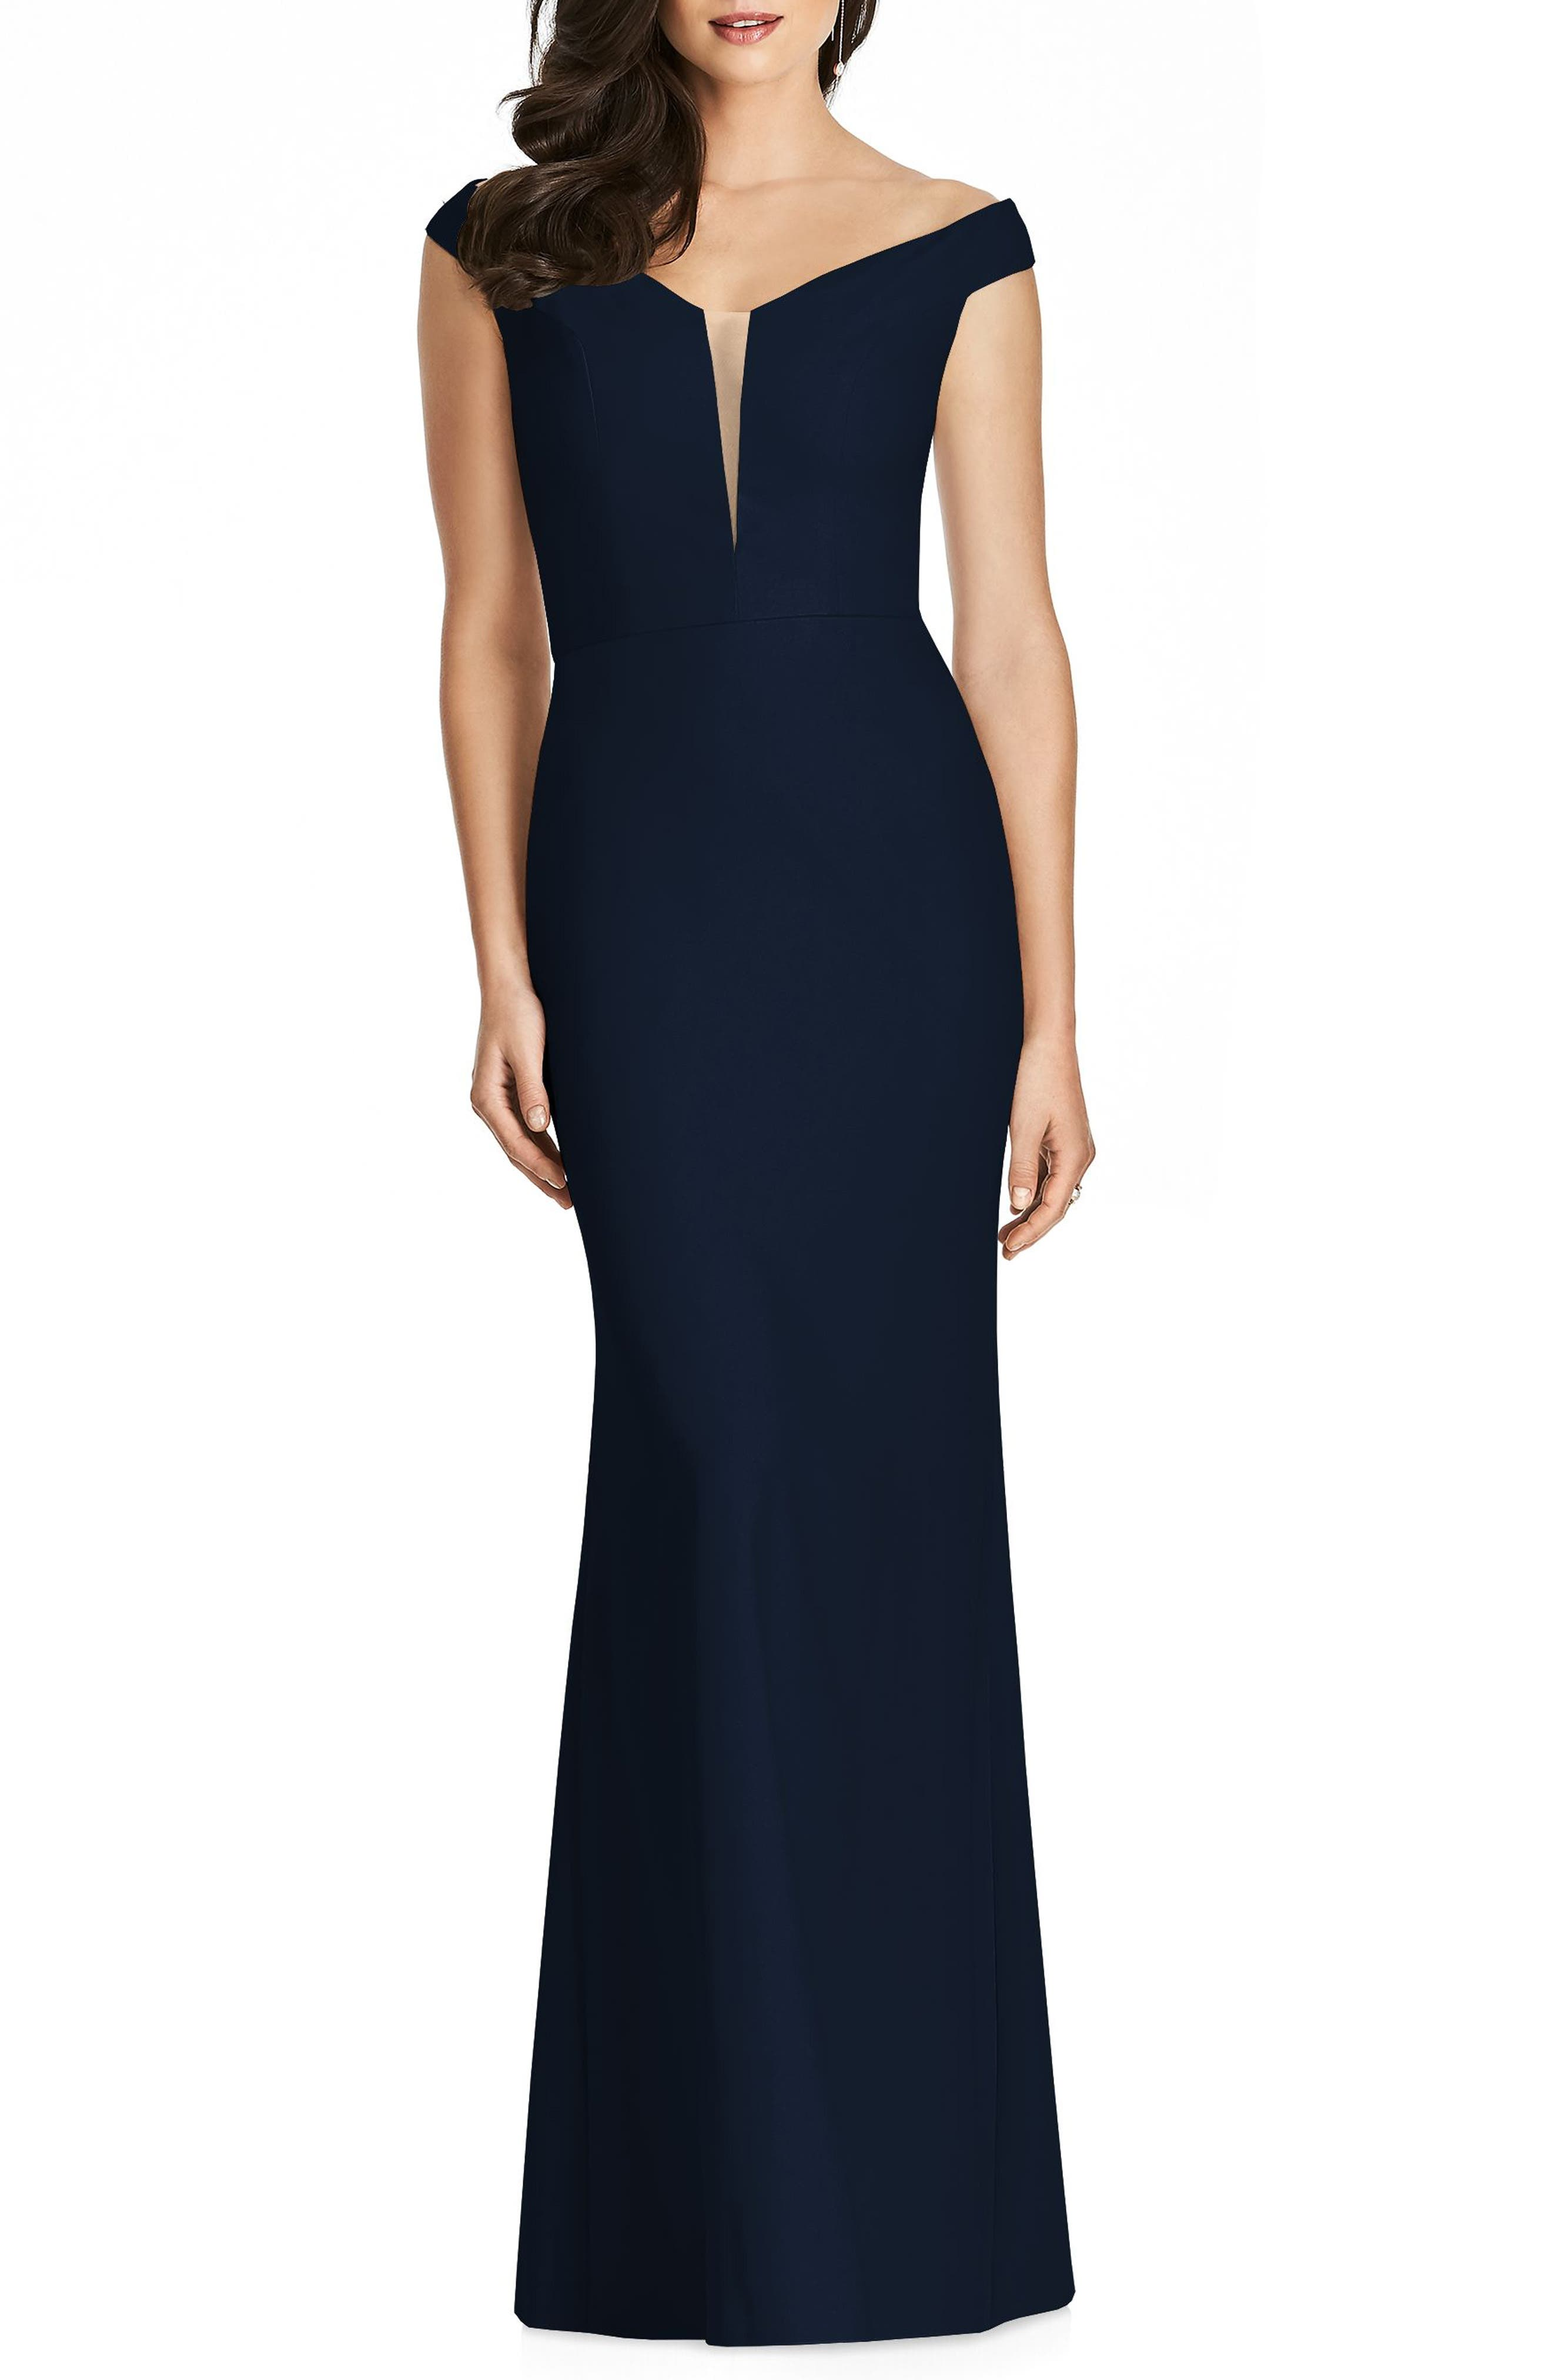 DESSY COLLECTION, Off the Shoulder Crepe Gown, Main thumbnail 1, color, MIDNIGHT